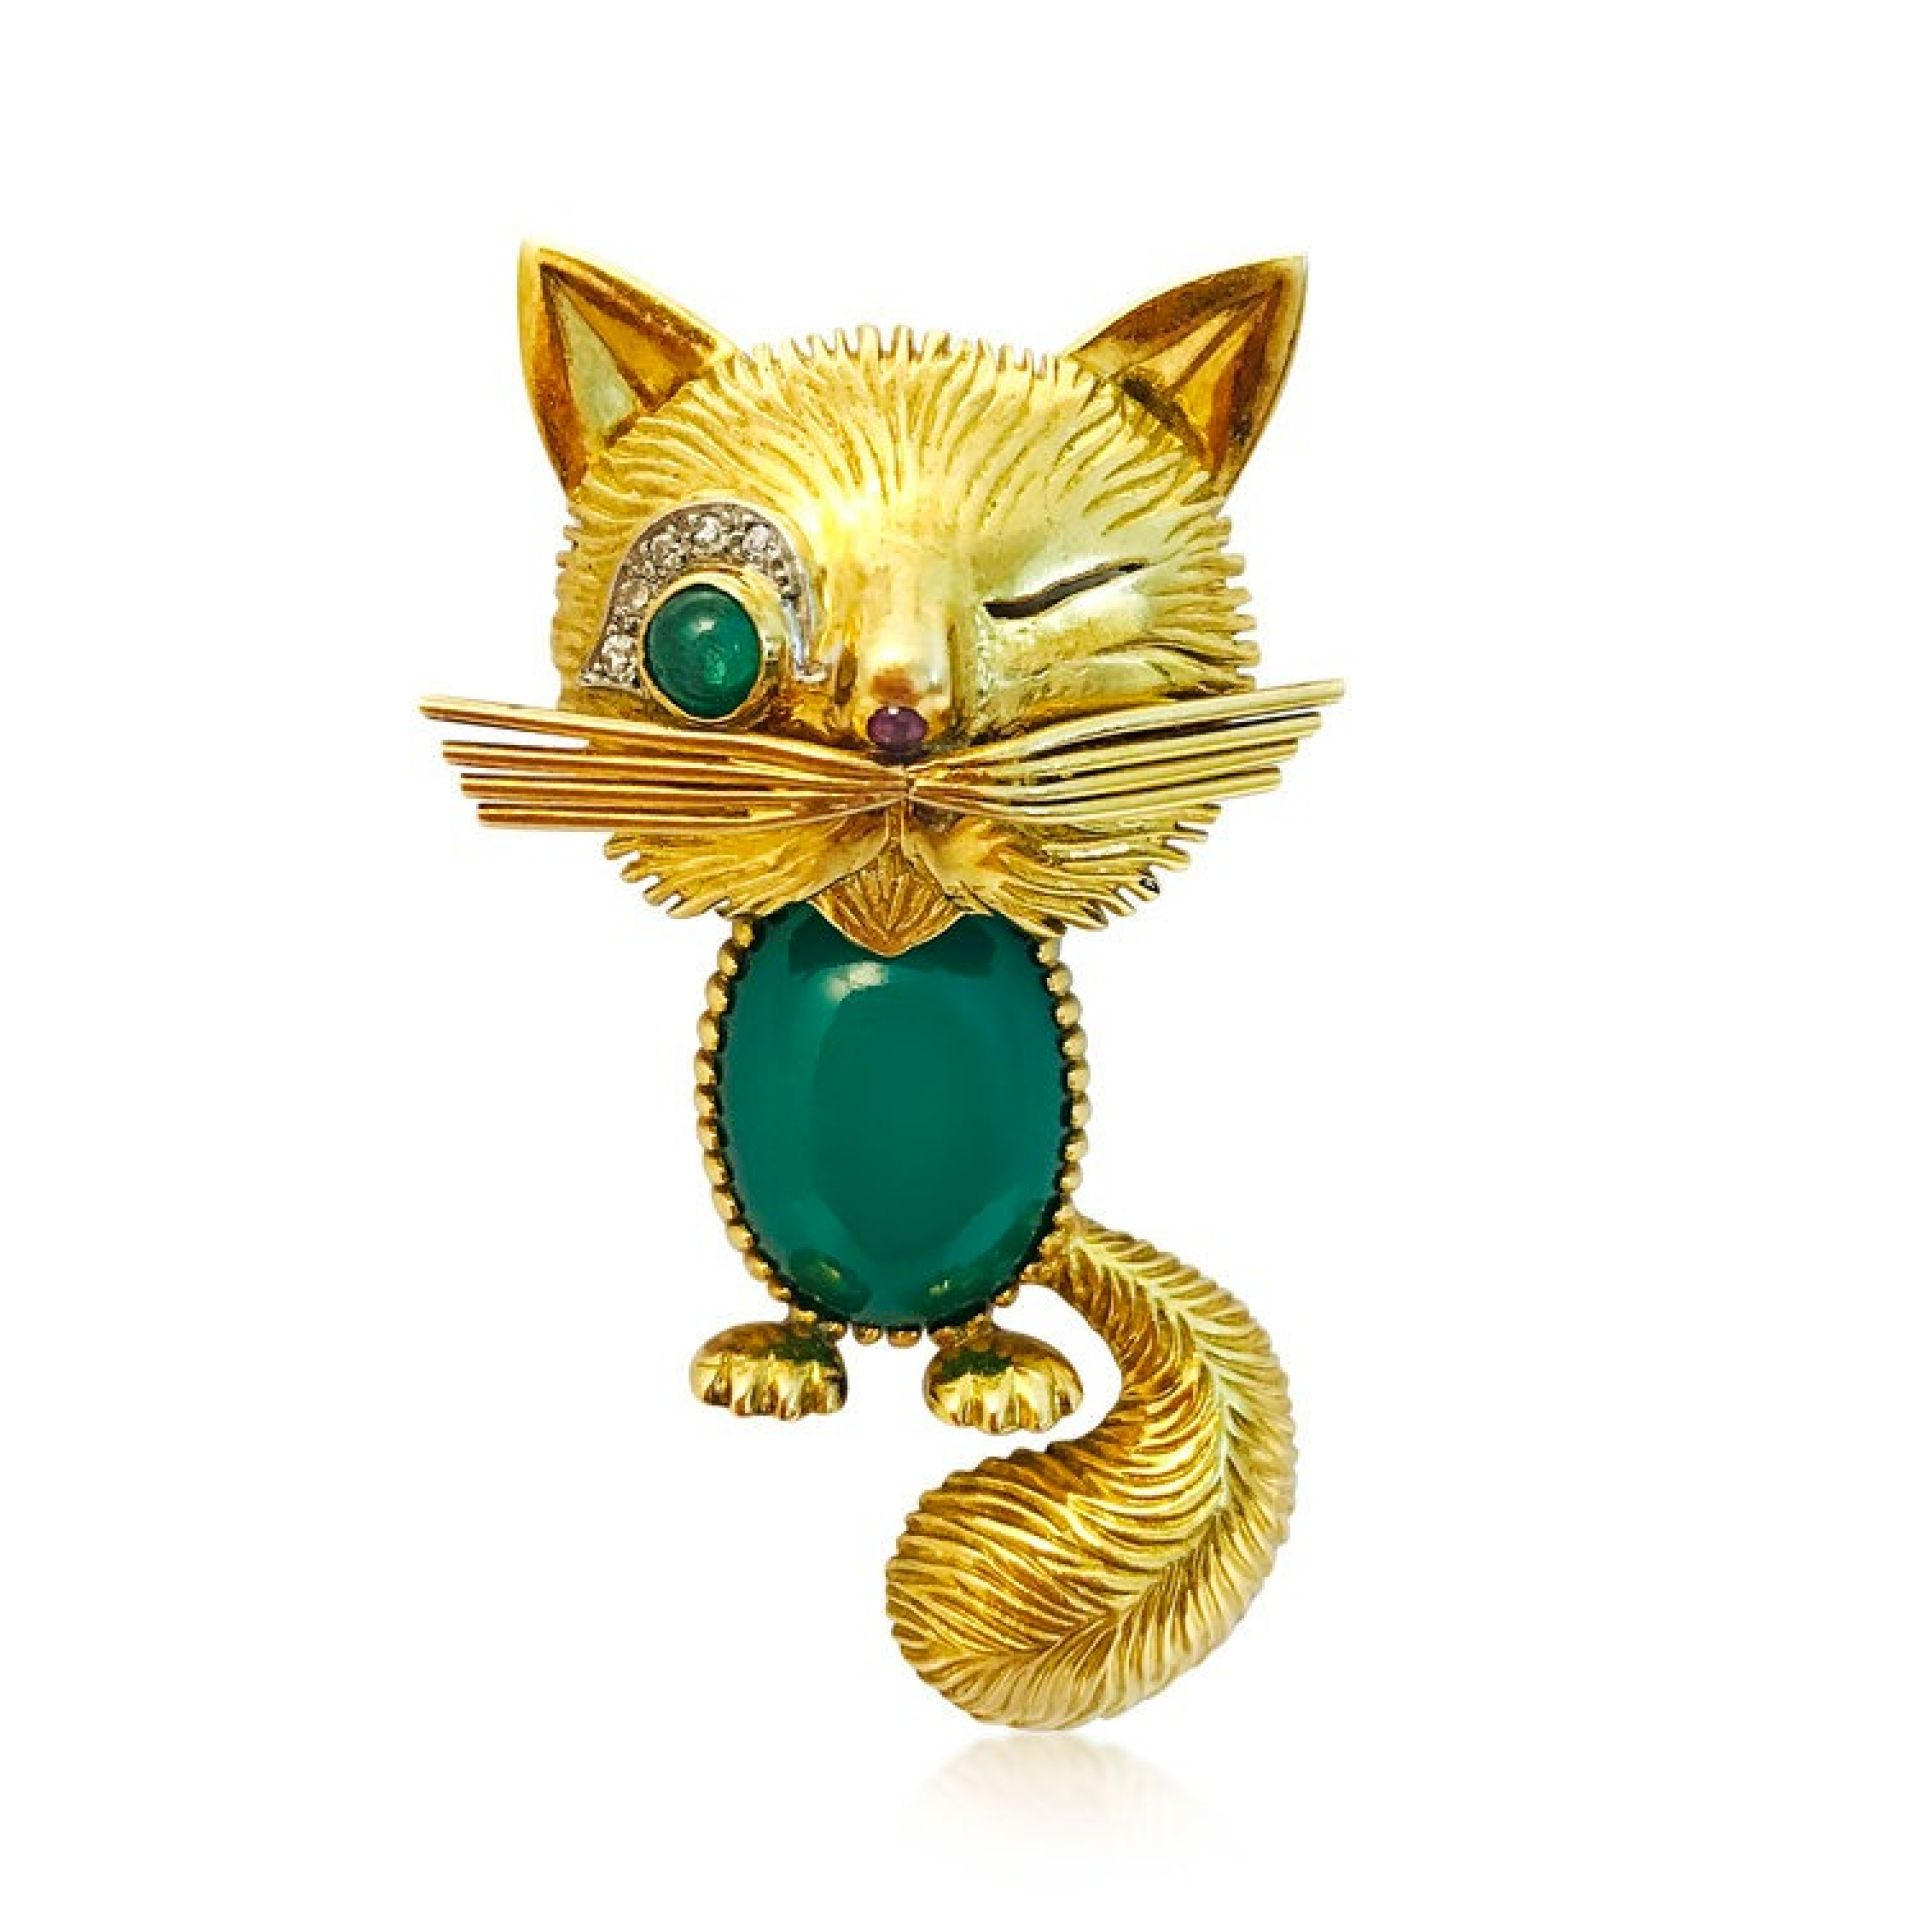 A CHRYSOPHRASE WINKING CAT BROOCH, BY VAN CLEEF & ARPELS